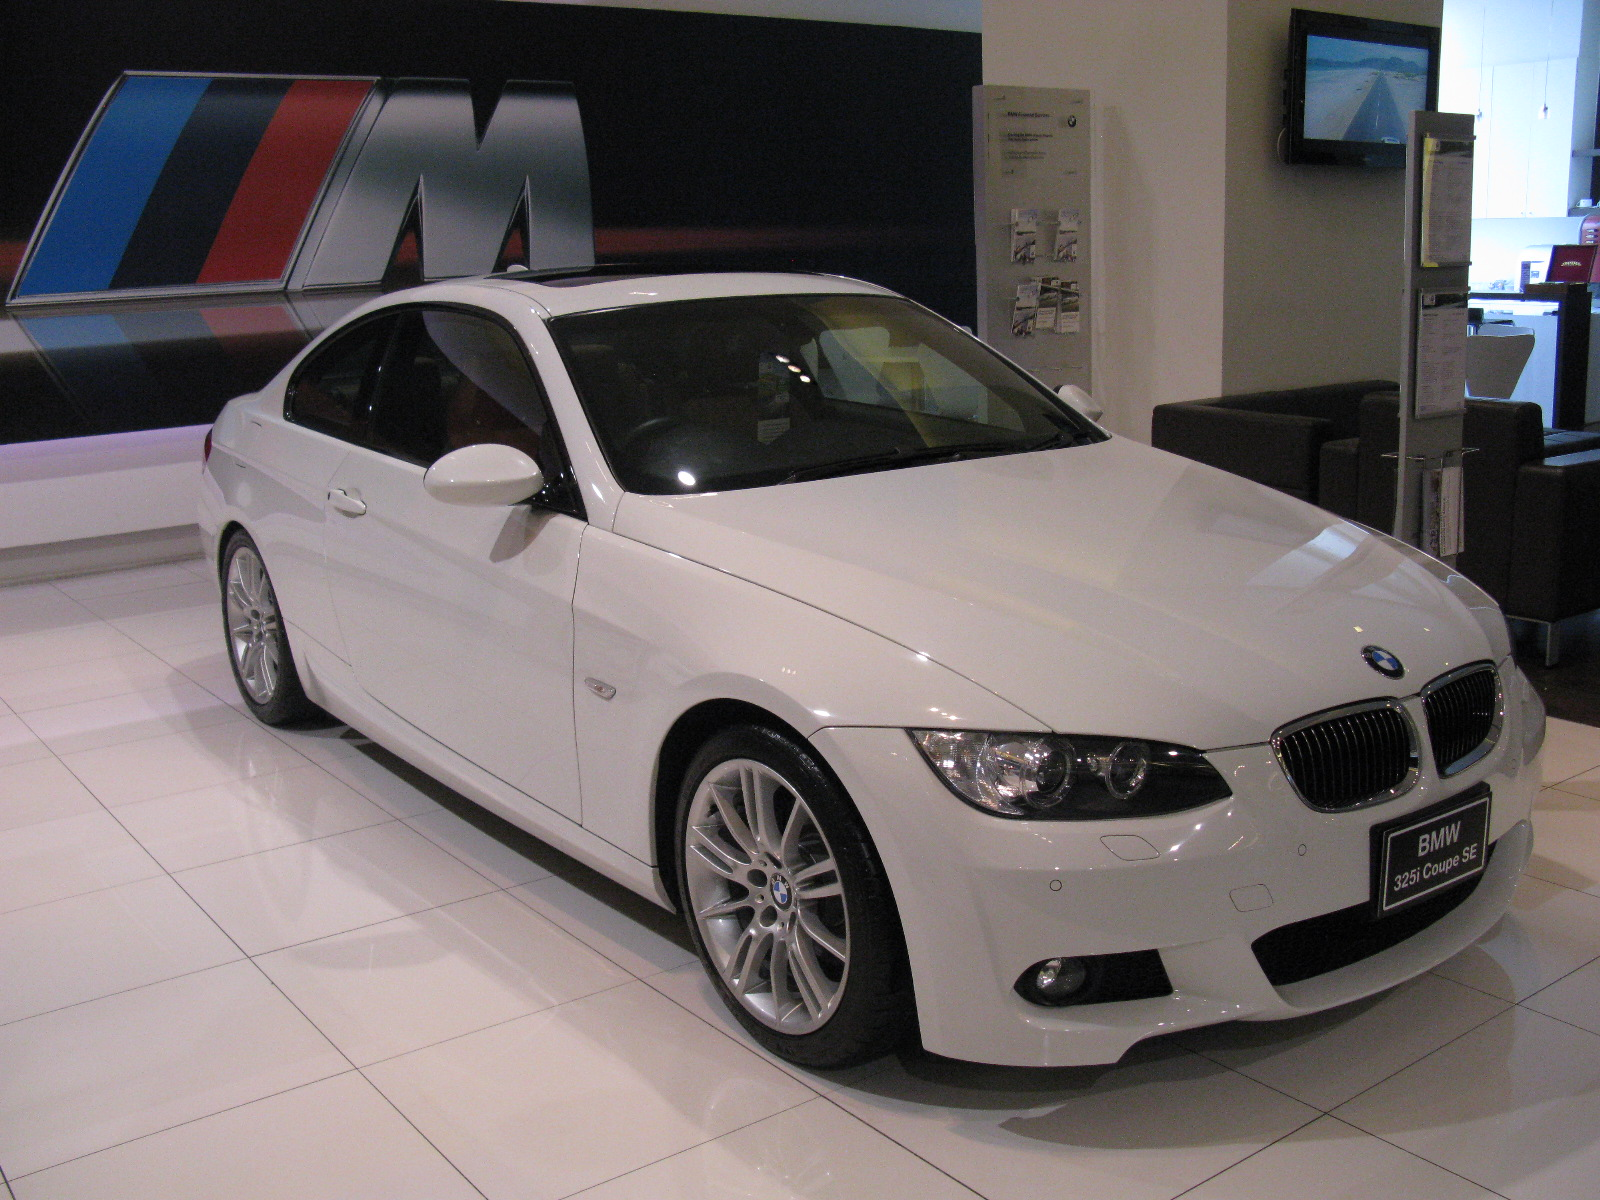 file bmw 325i coup m sport e92 5962161237 jpg wikimedia commons. Black Bedroom Furniture Sets. Home Design Ideas